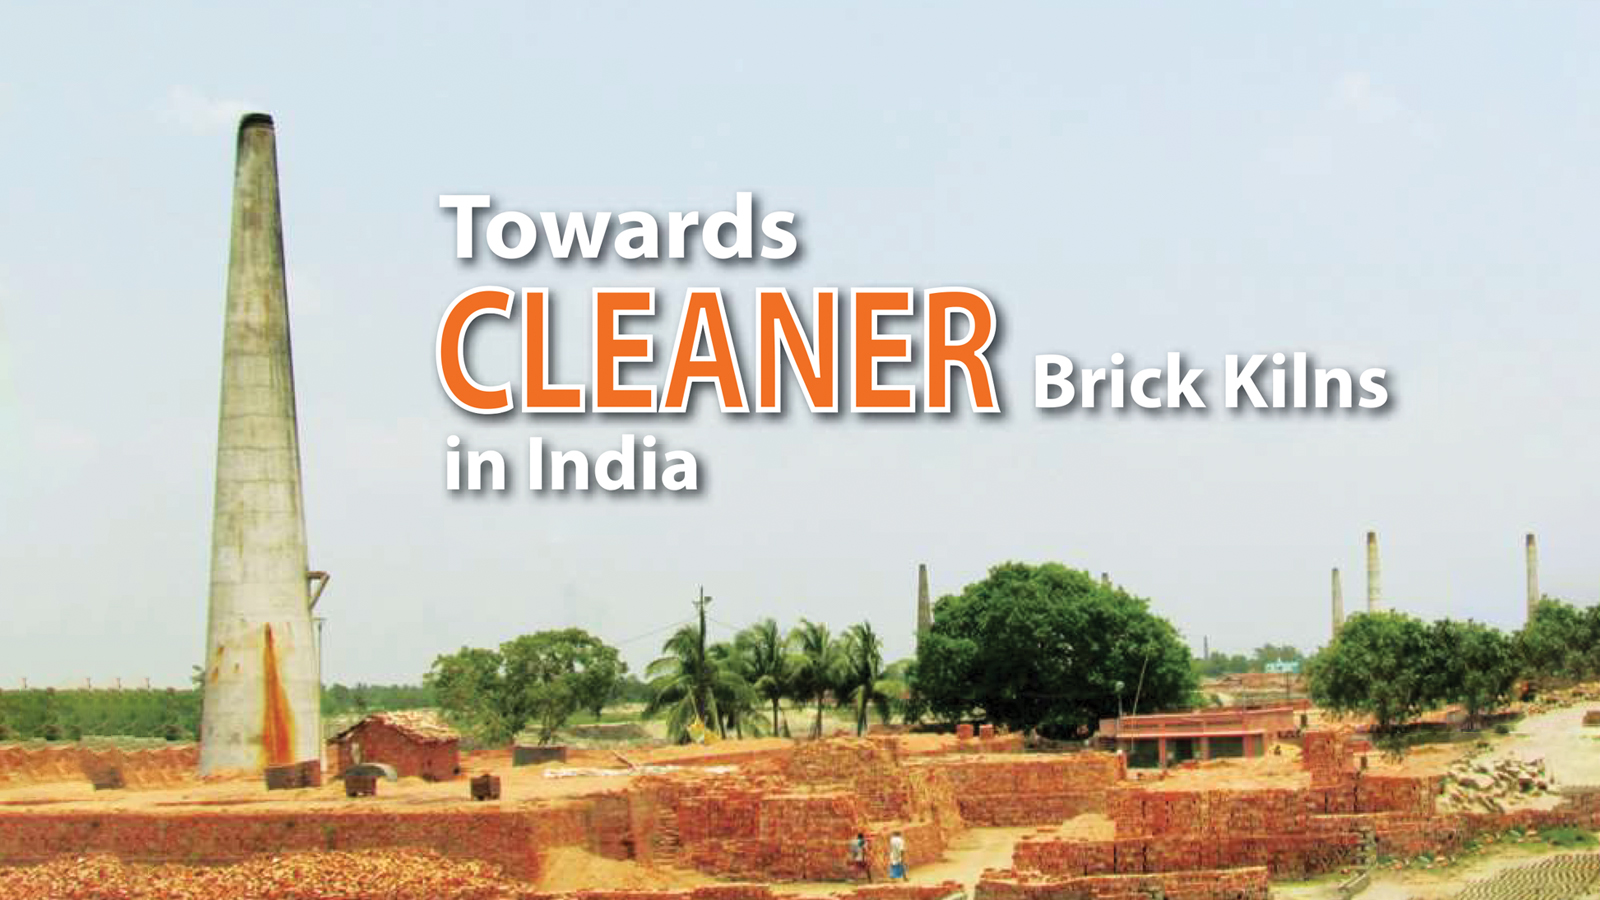 Towards Cleaner Brick Kilns in India